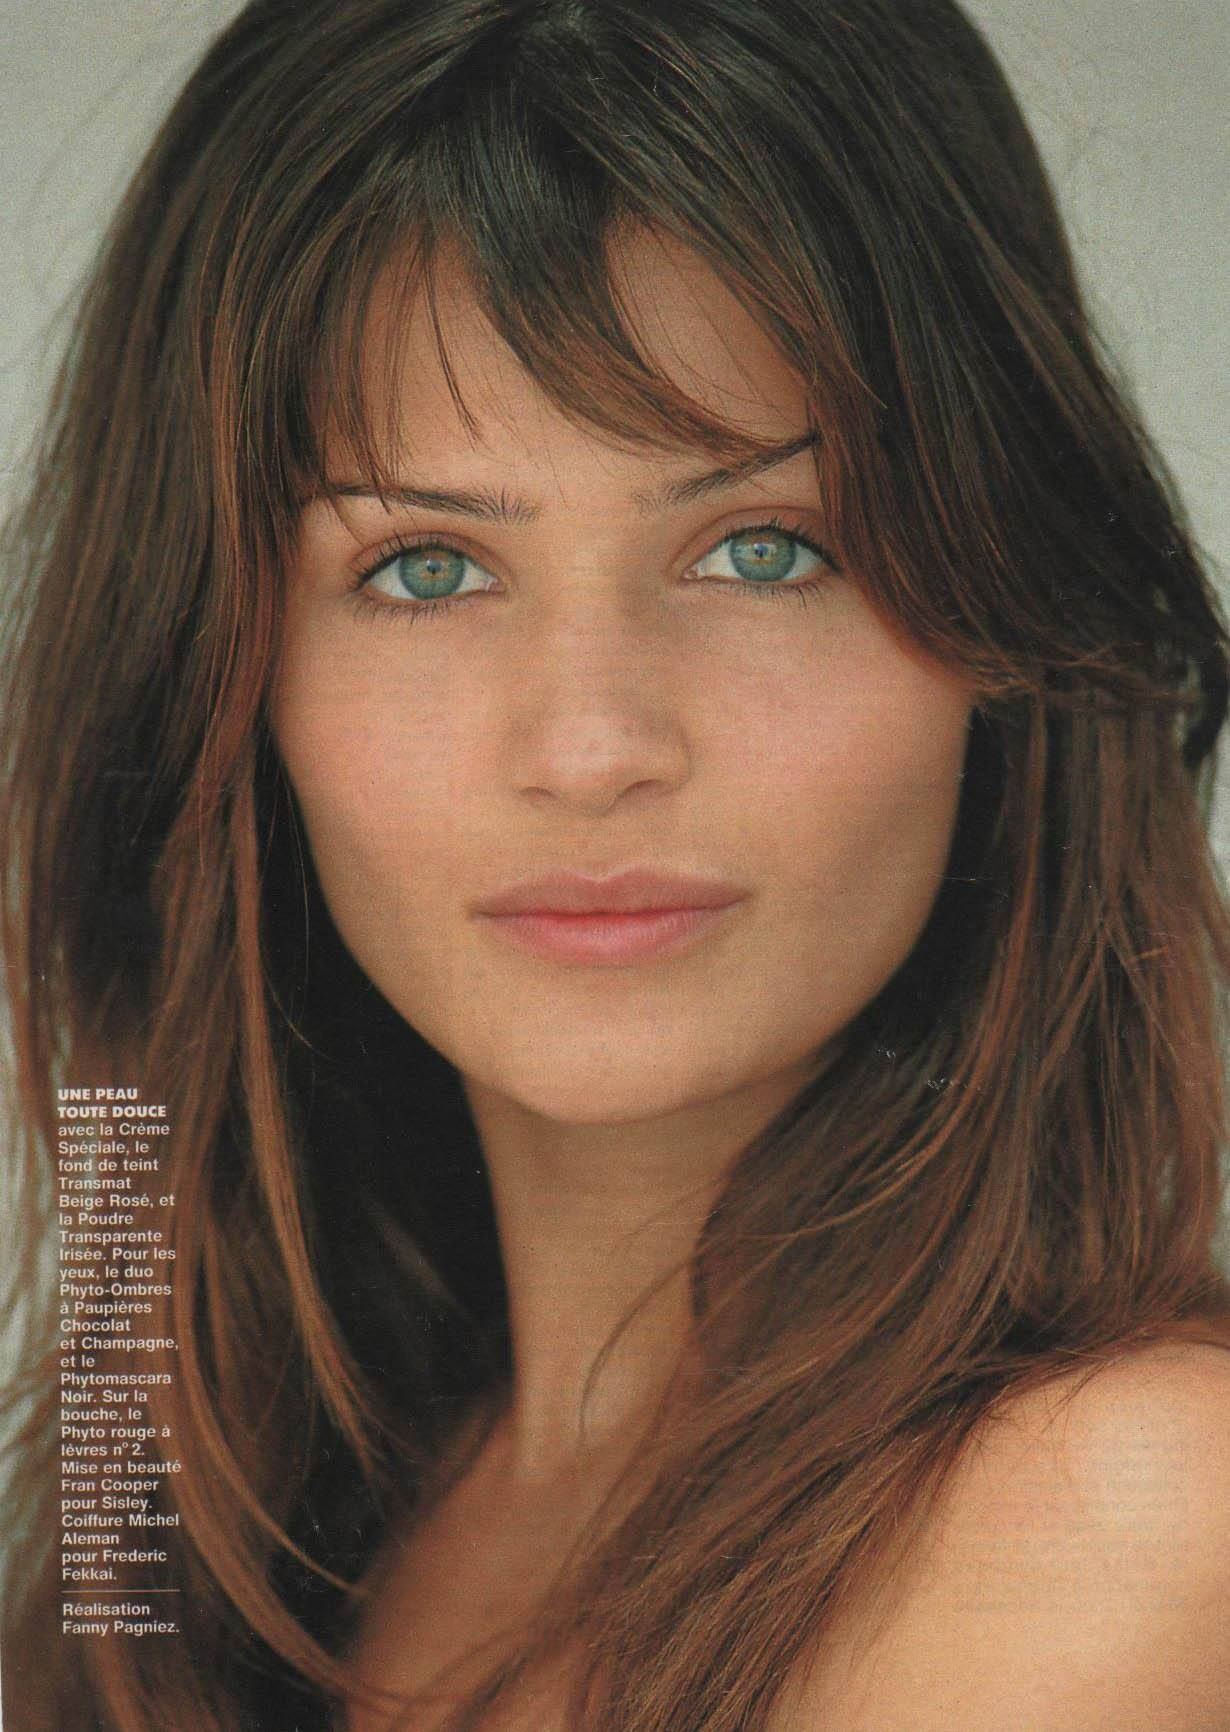 Celebrites Helena Christensen nudes (49 foto and video), Pussy, Hot, Feet, braless 2015